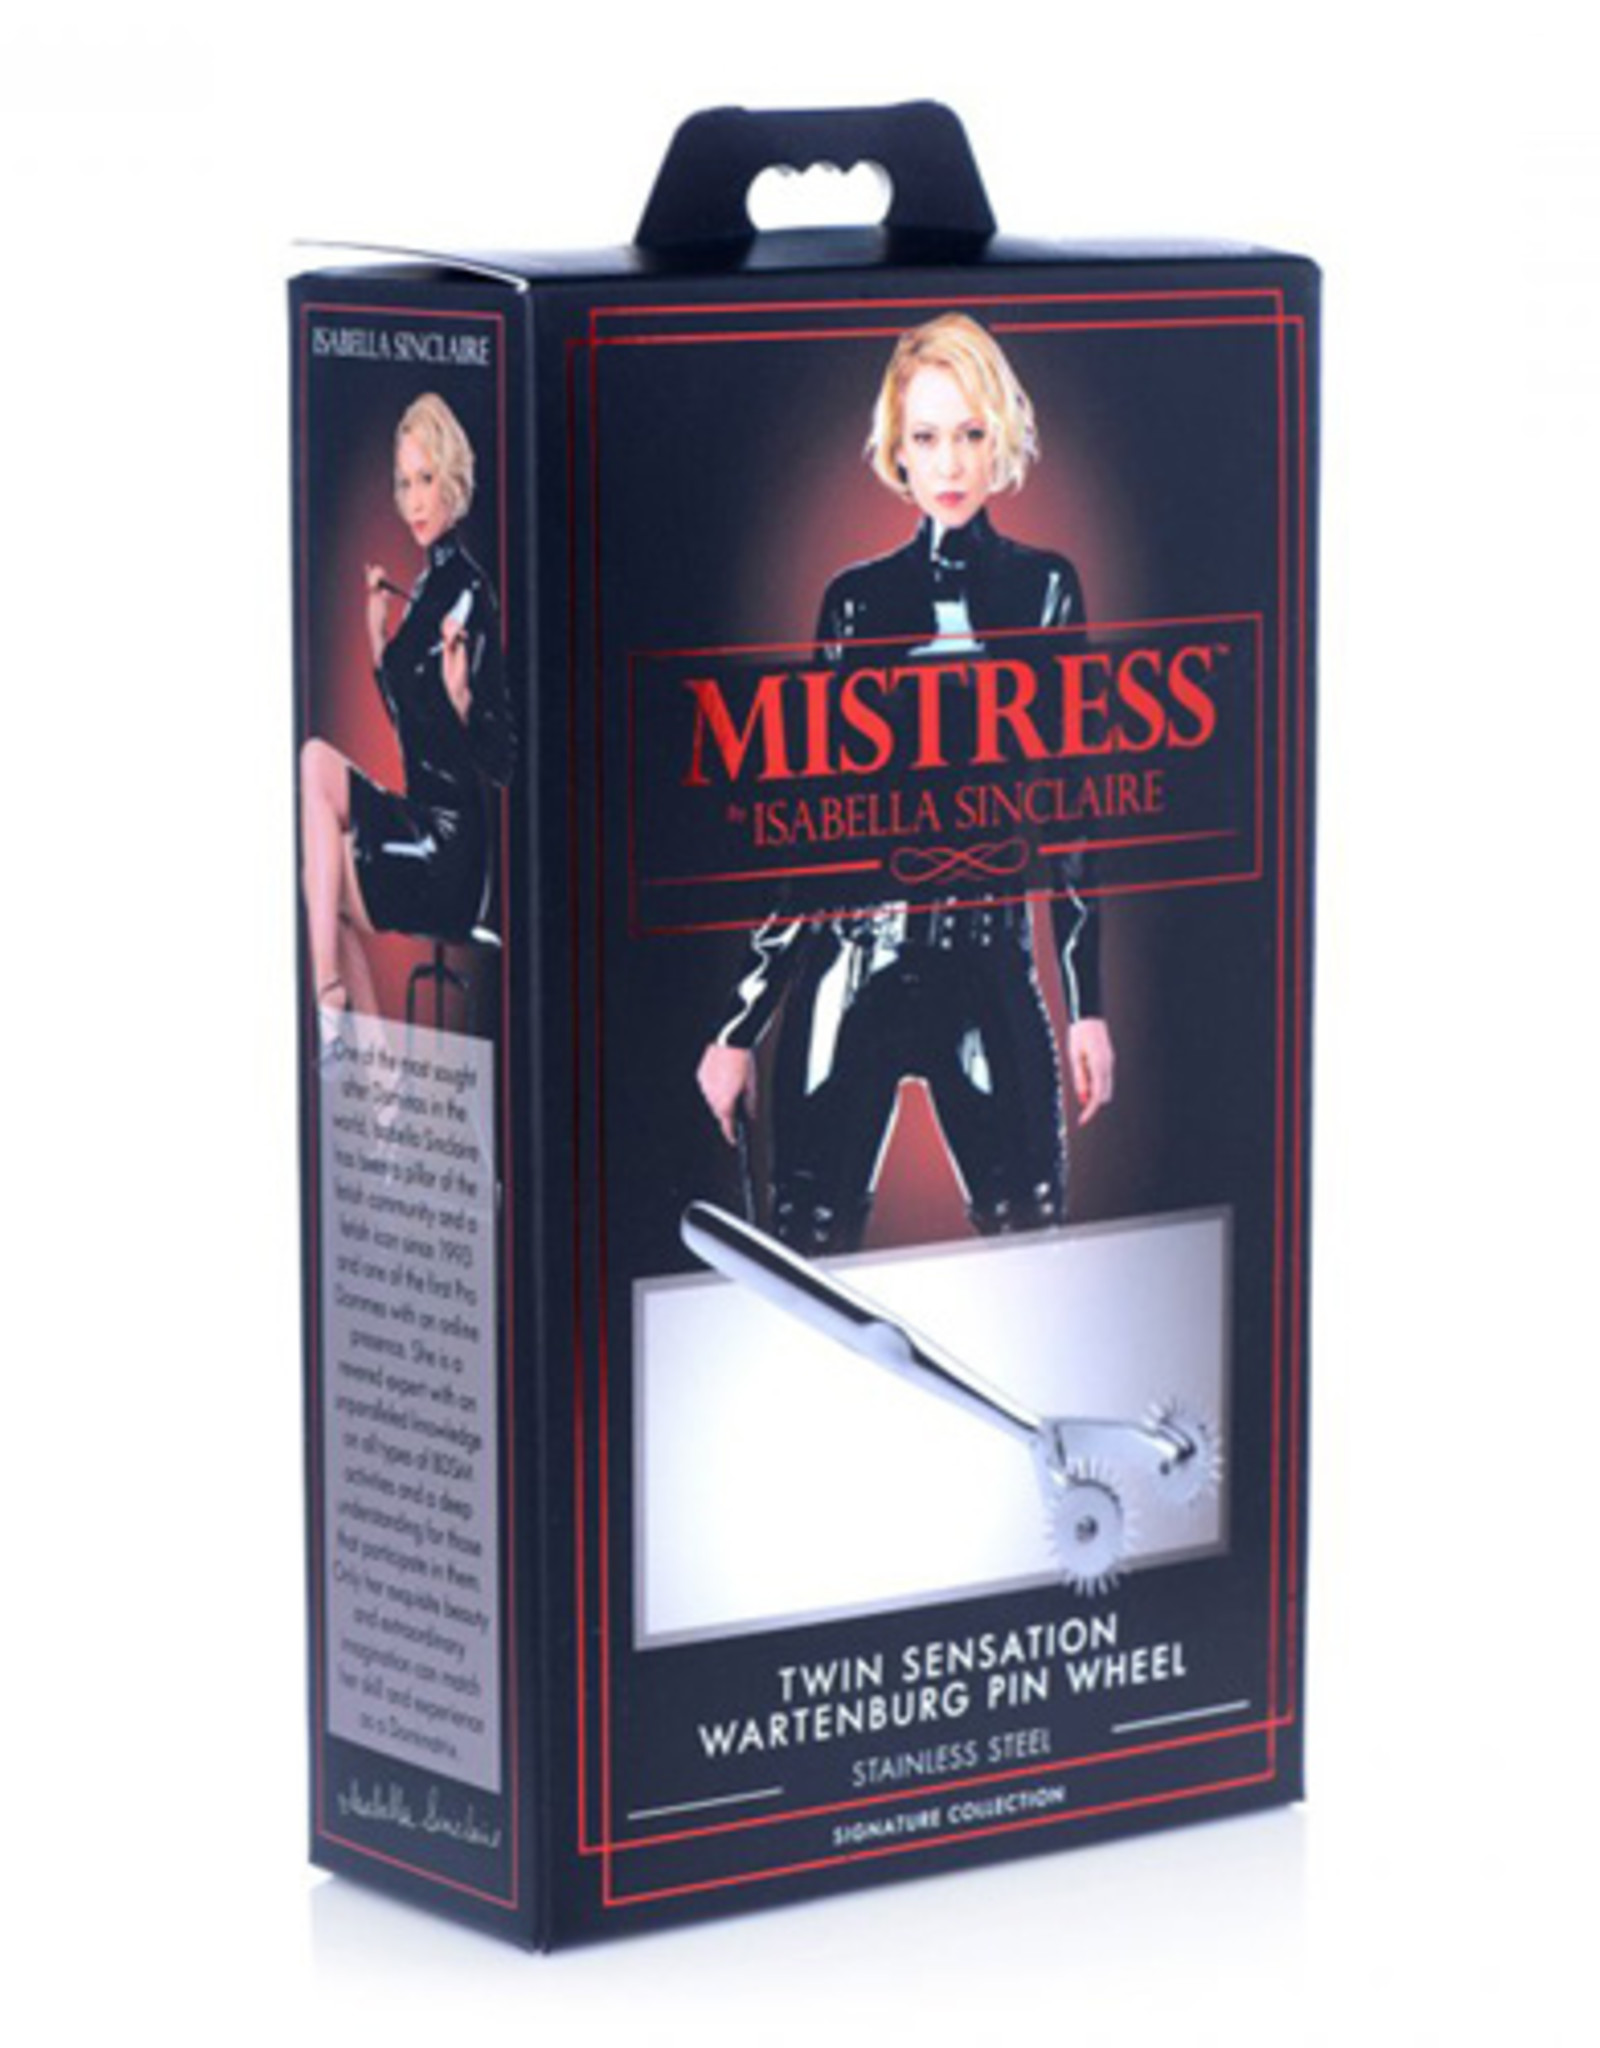 Mistress by Isabella Sinclaire Isabella Sinclaire Twin Sensation Pinwheel